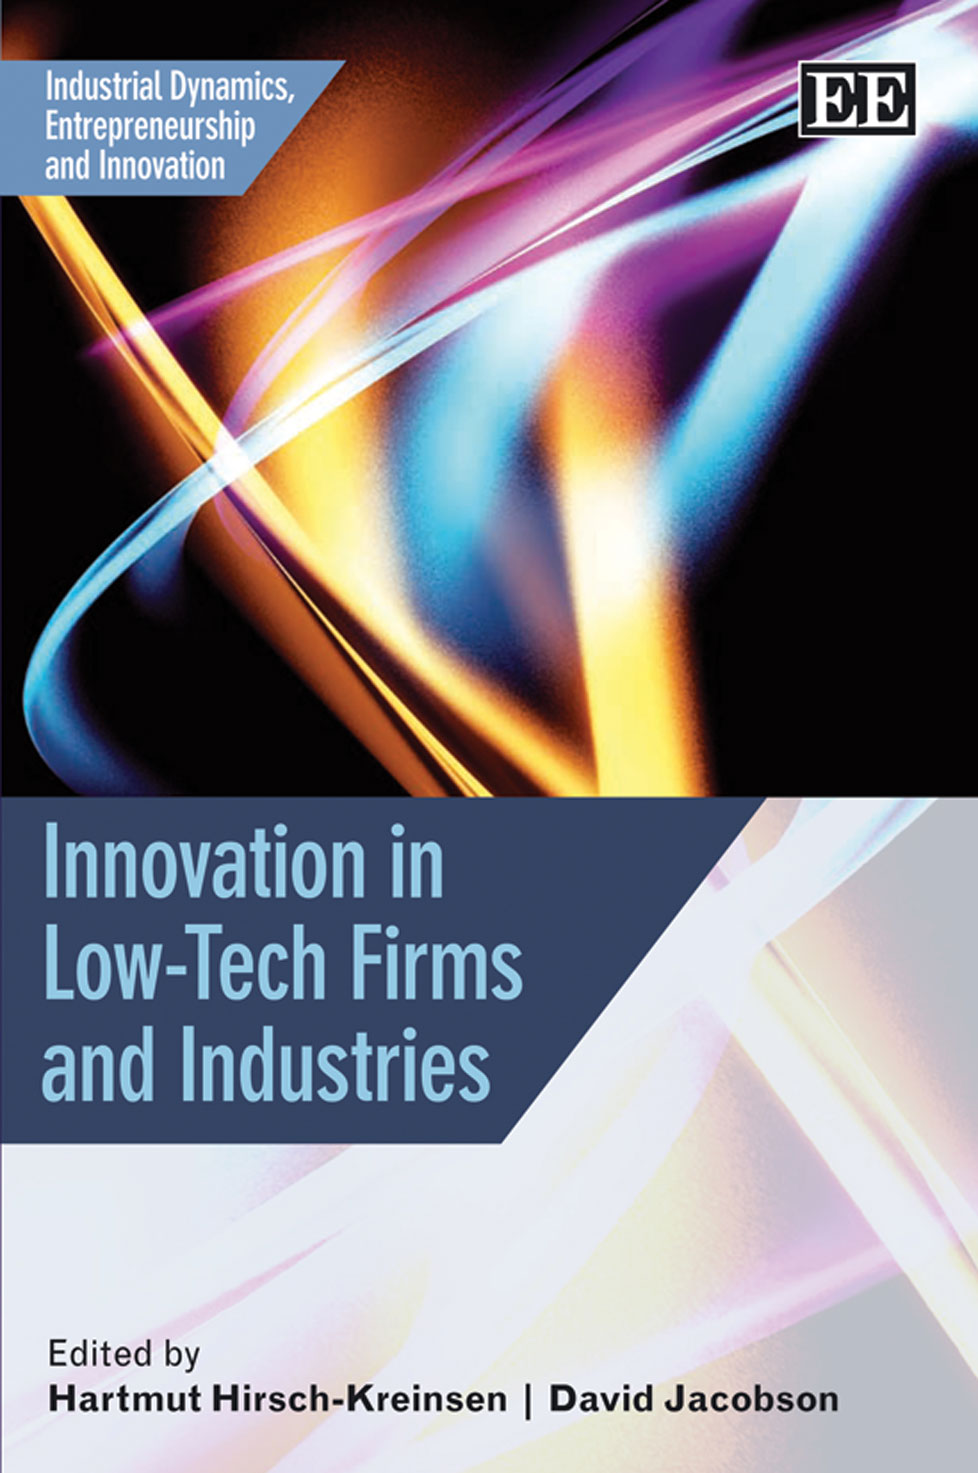 Innovation in Low-Tech Firms and Industries